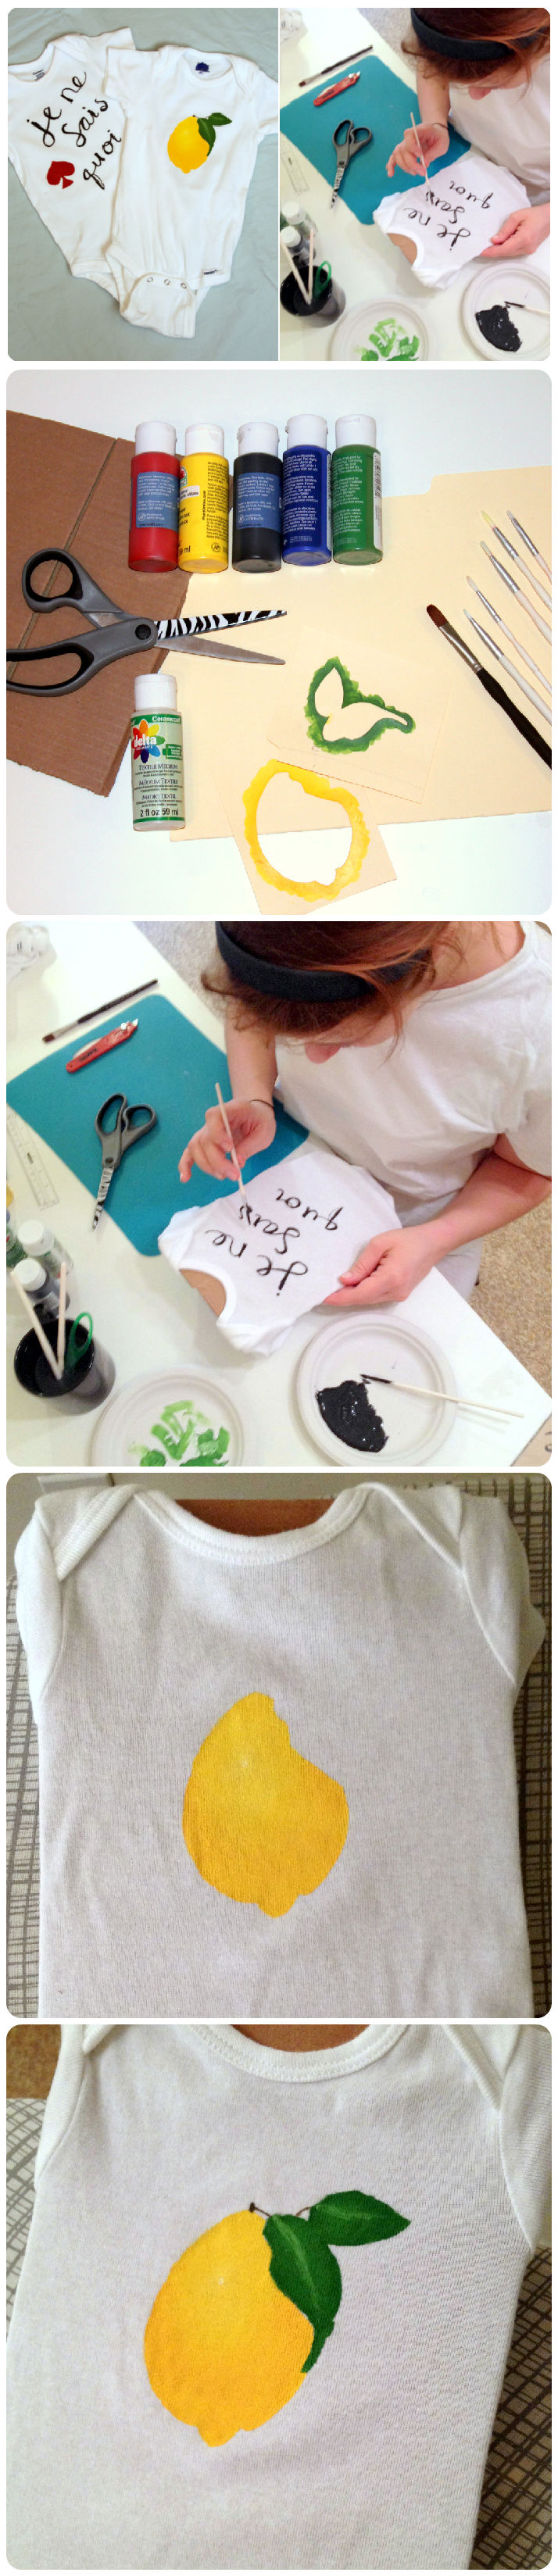 Hand-Painted Onesies! For a unique gift, or for baby shower activity, try painting your own custom baby clothes! It's easier than you might think. Mine were inspired by Kate Spade collections, but you can make whatever you want.